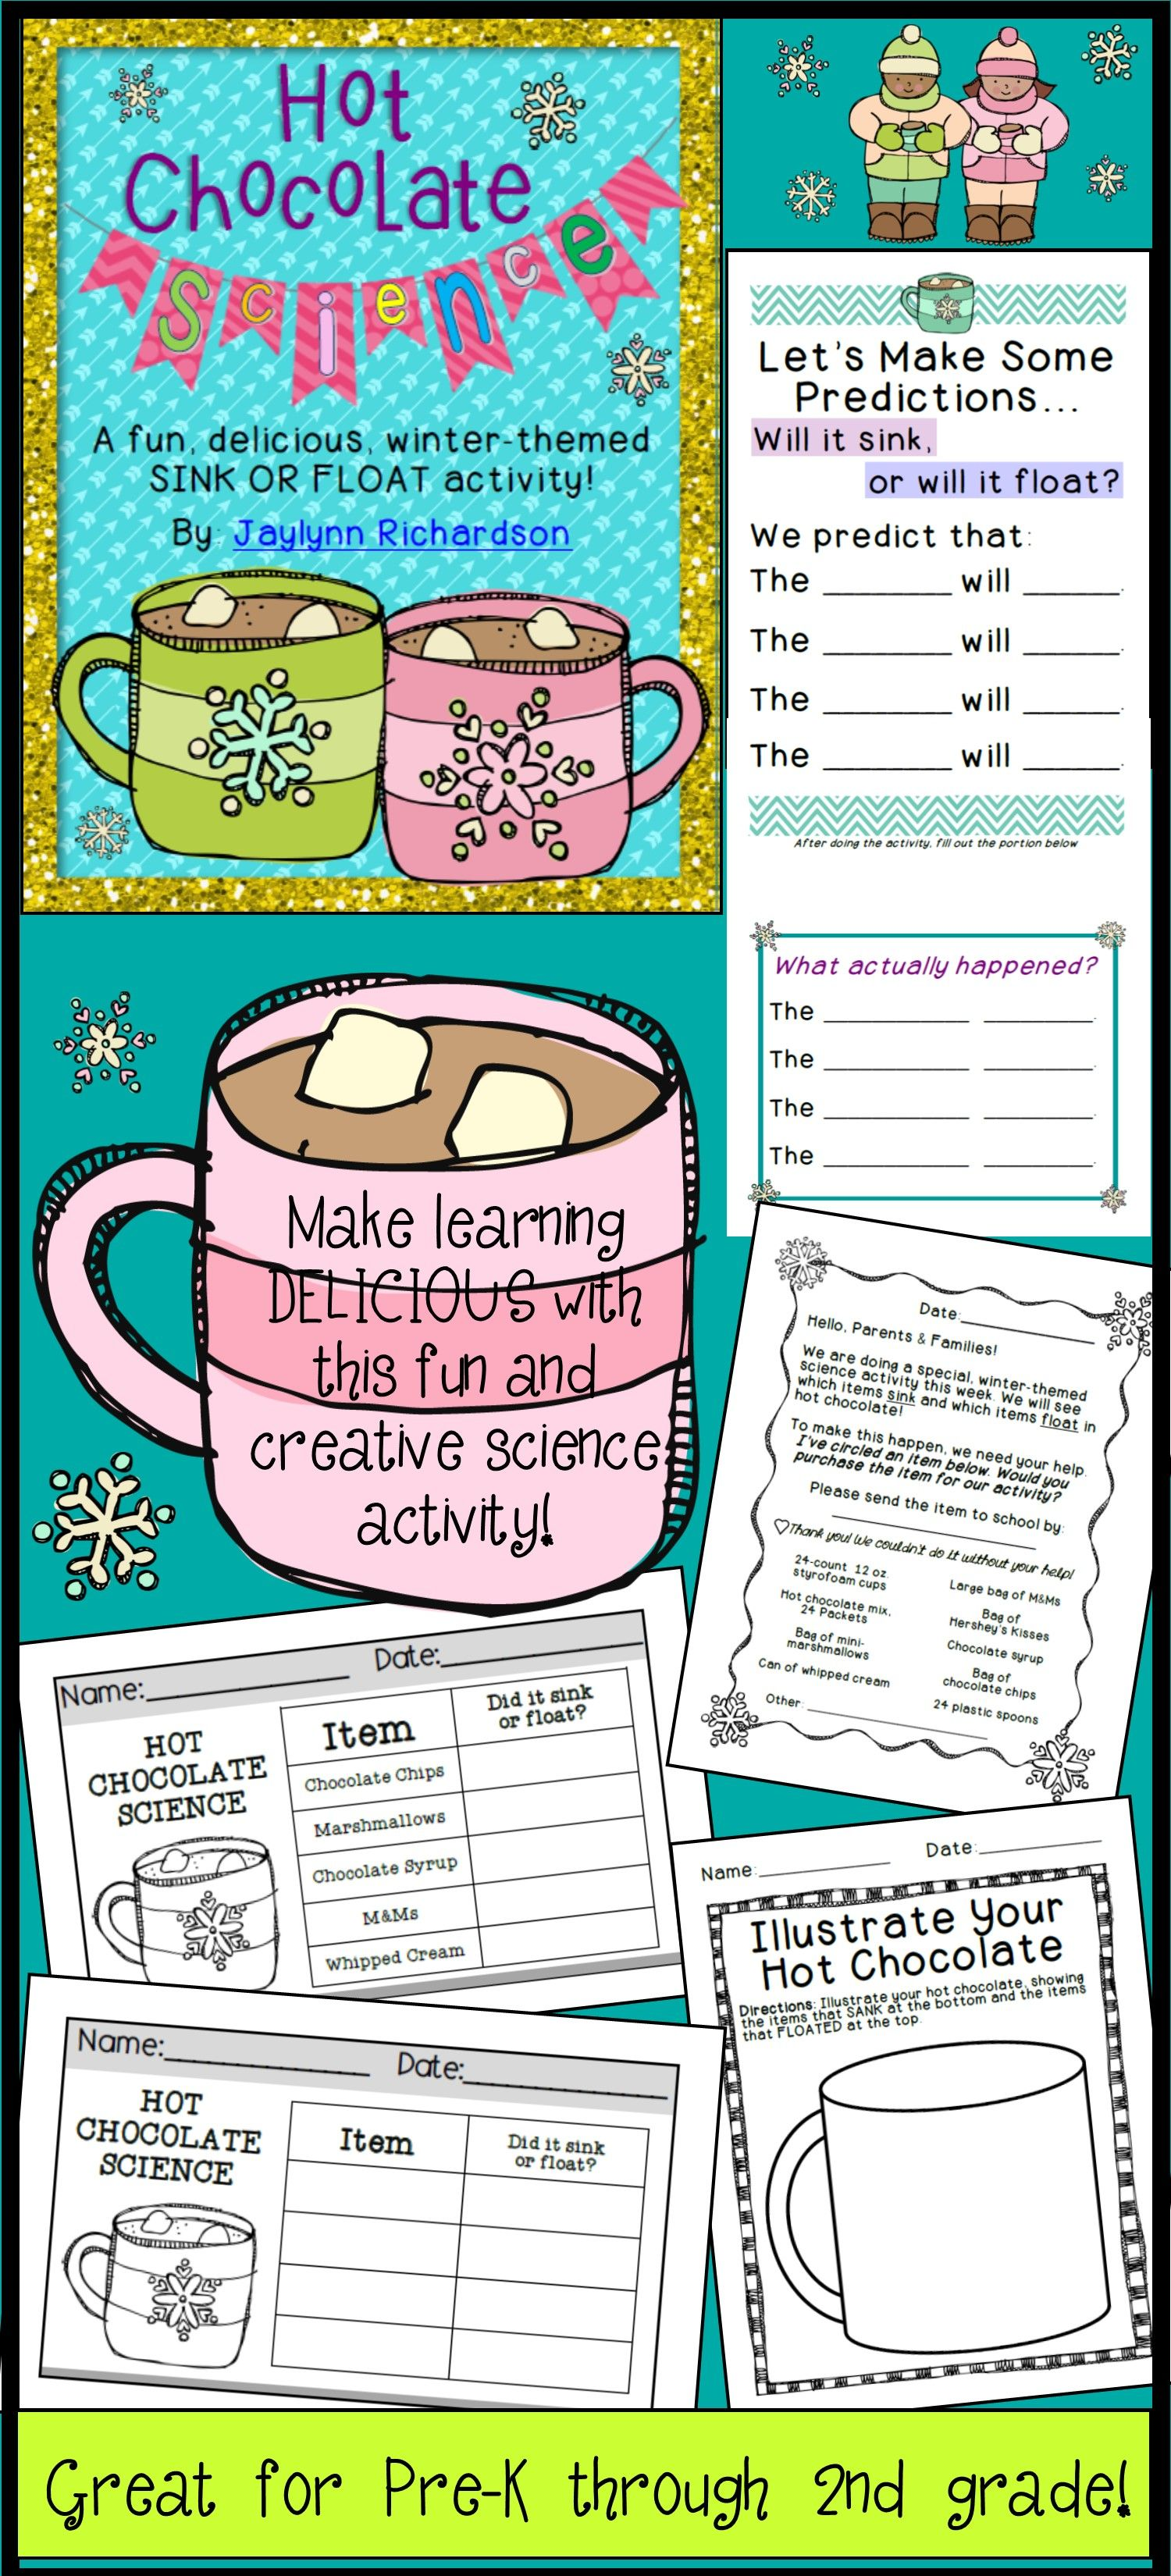 Hot Chocolate Science A Fun Delicious Sink Or Float Activity